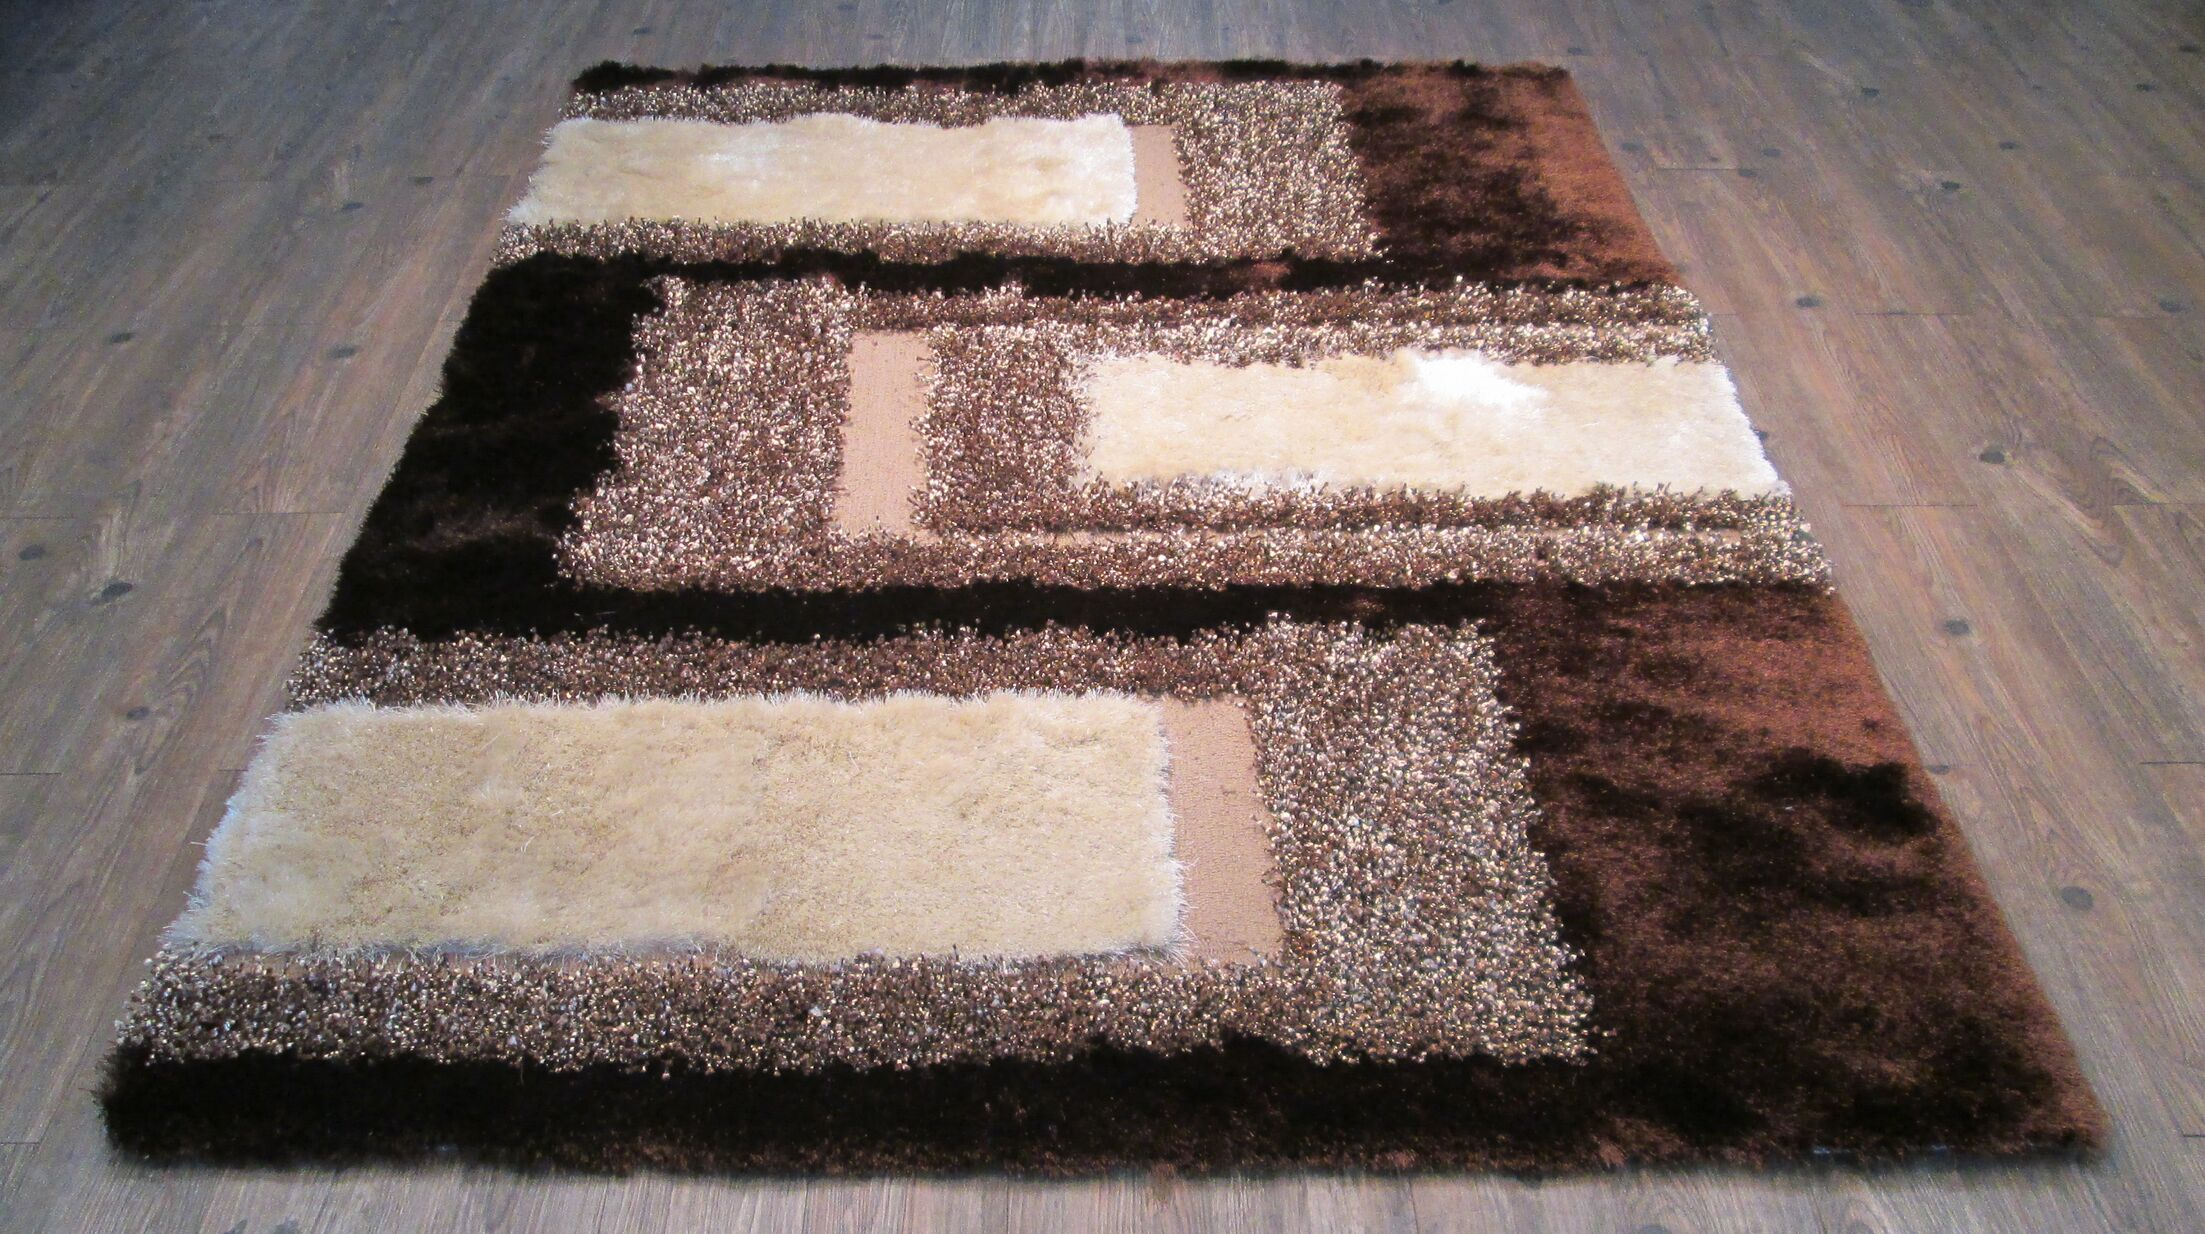 Yarbrough Hand-Tufted Brown/Beige Area Rug Rug Size: Rectangle 5' x 7'